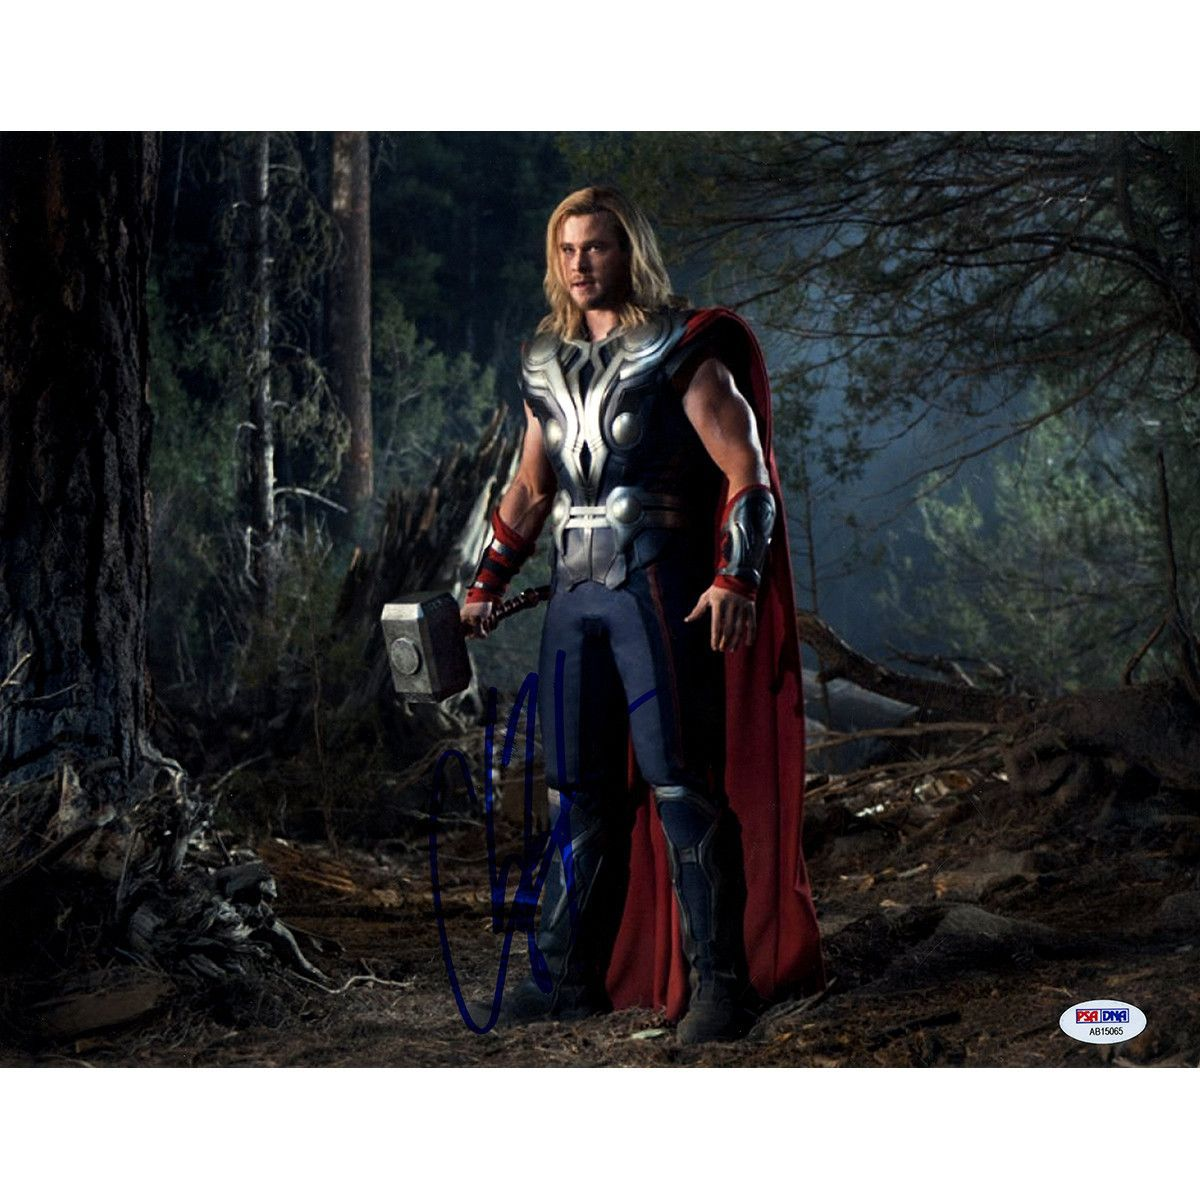 Chris Hemsworth Signed 11x14 Thor Photo Horizontal in Forest (PSA/DNA)